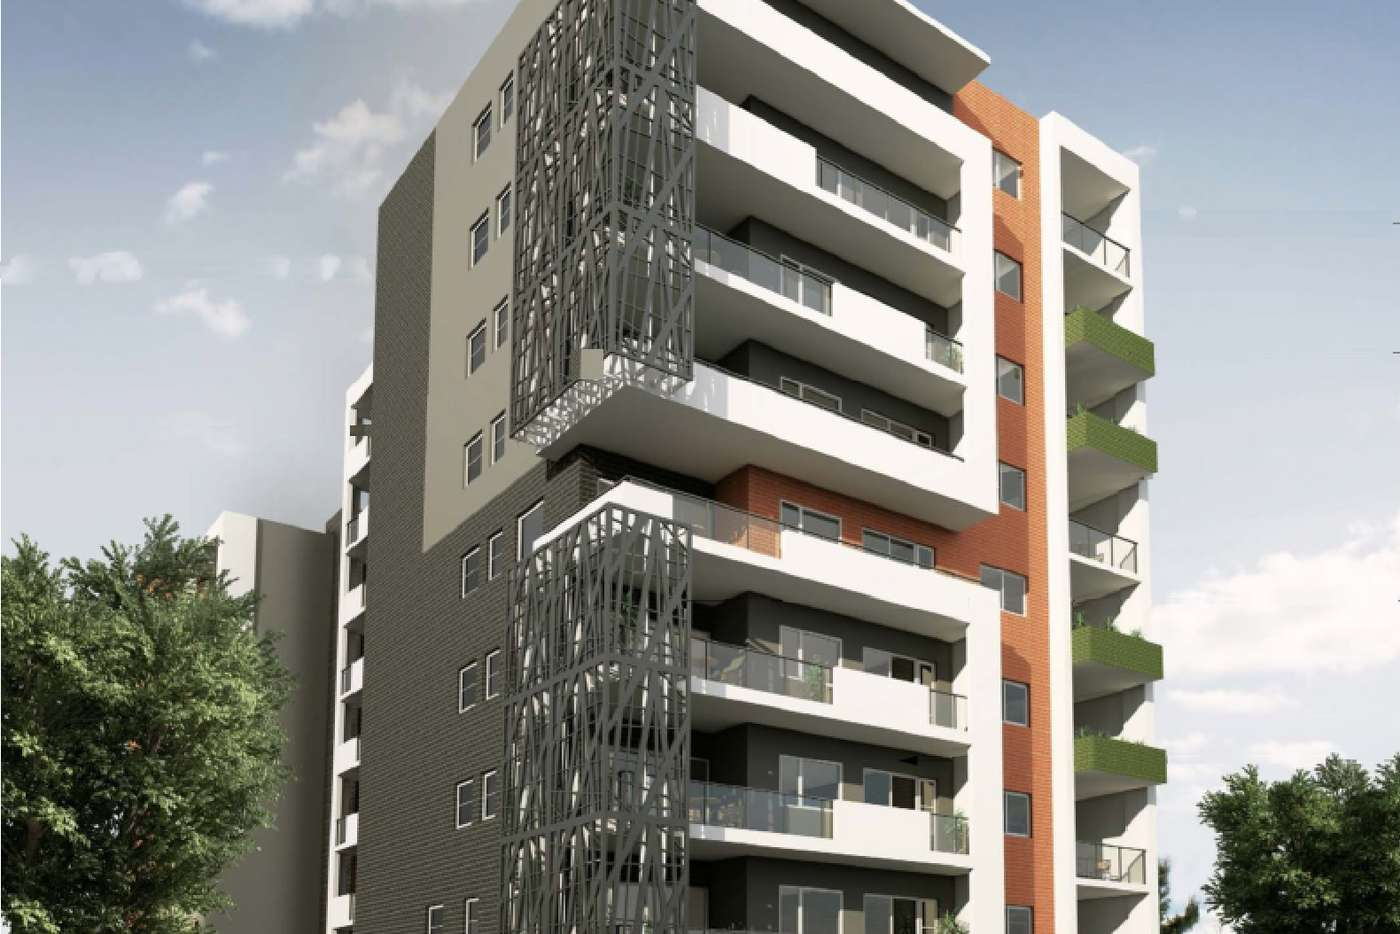 Main view of Homely apartment listing, 7 Weston Street, Rosehill NSW 2142